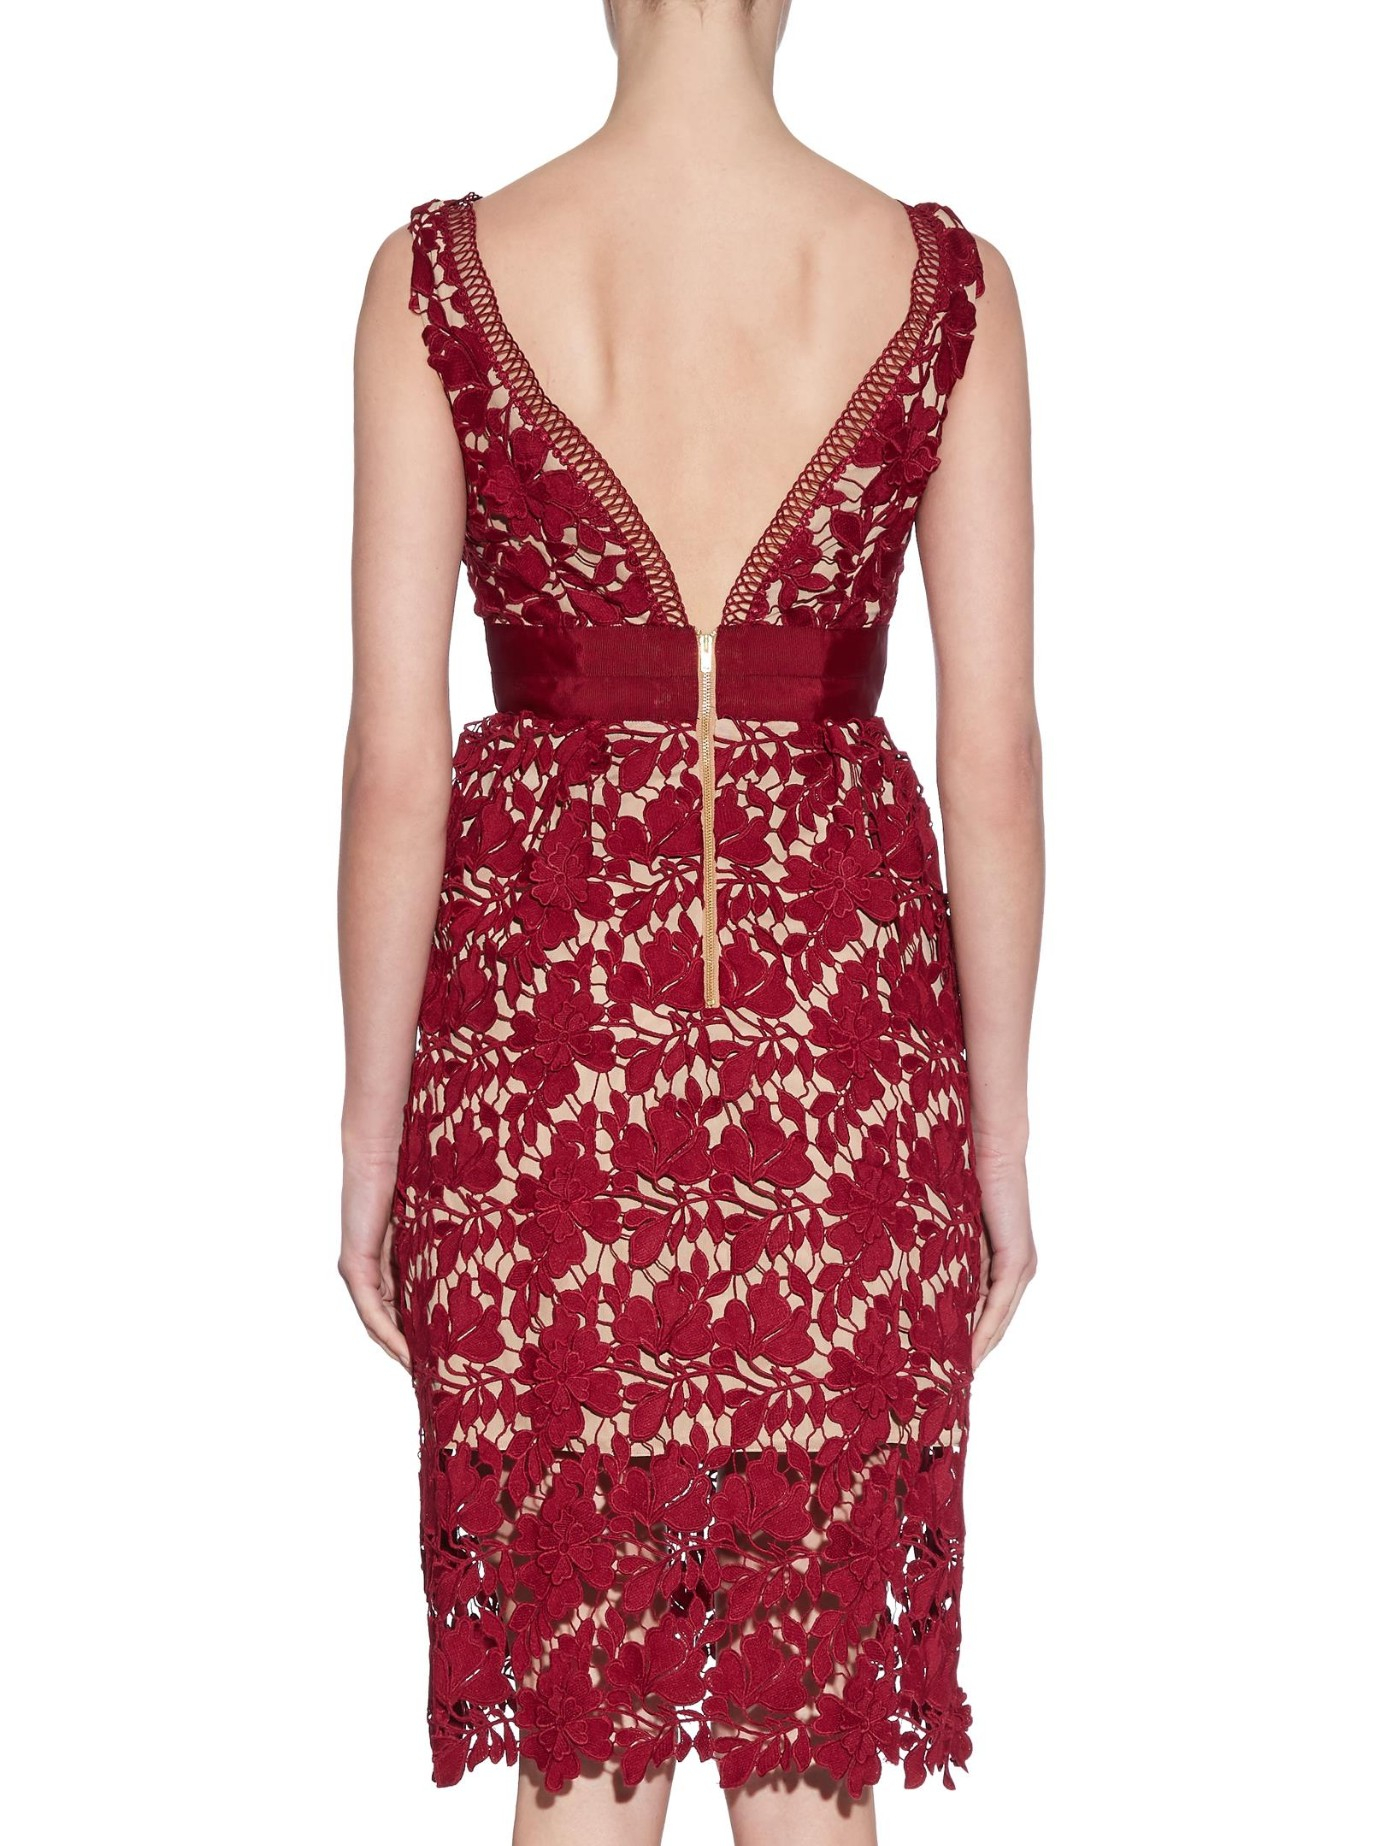 bbdfb019d0727 Lyst - Self-Portrait Floral-Lace Midi Dress in Red